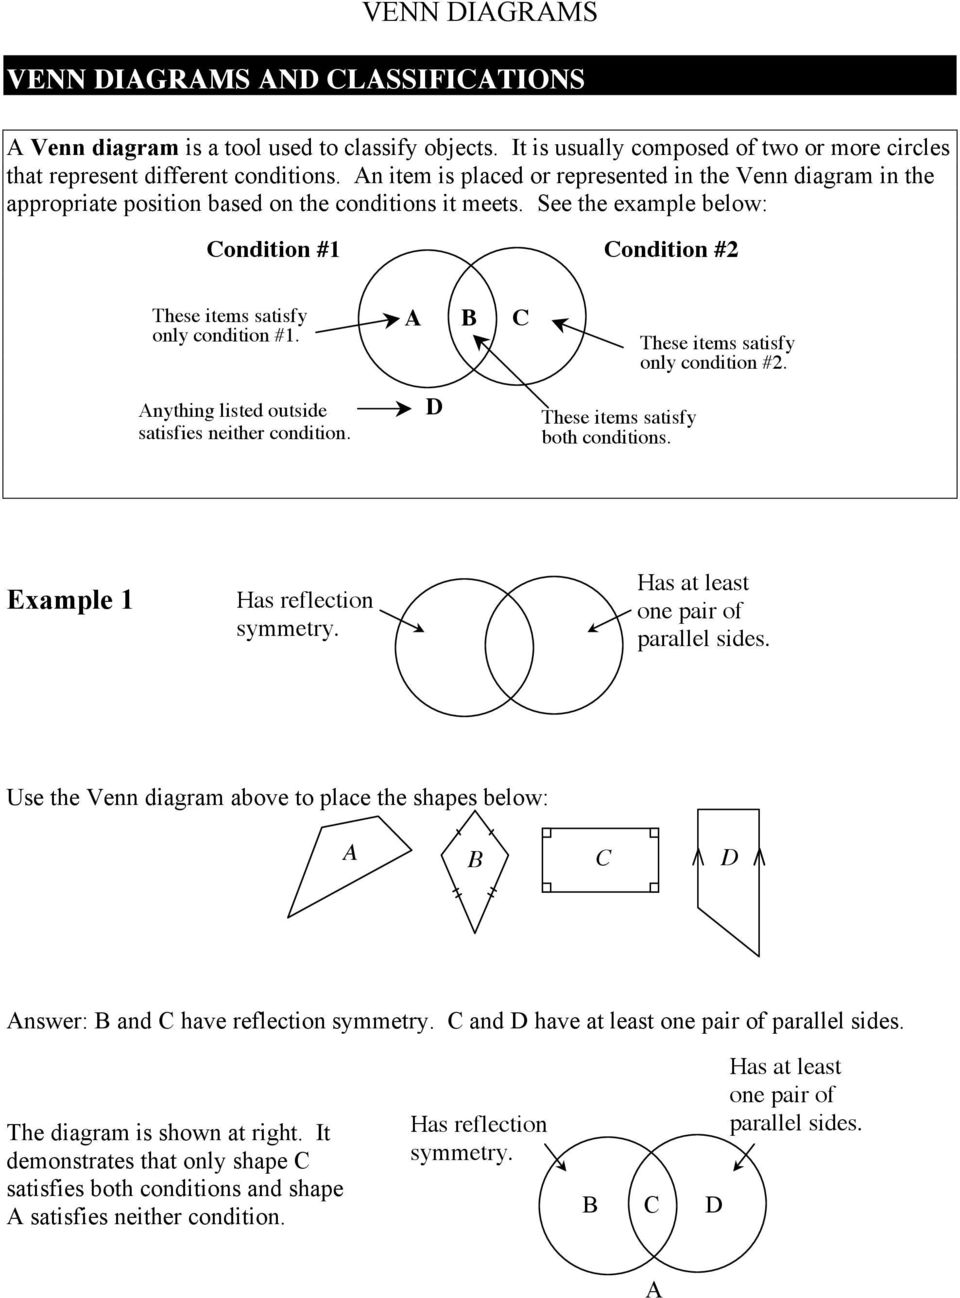 Venn Diagrams Condition 1 2 A B C Answer And Have Logic Diagram Examples See The Example Below These Items Satisfy Only